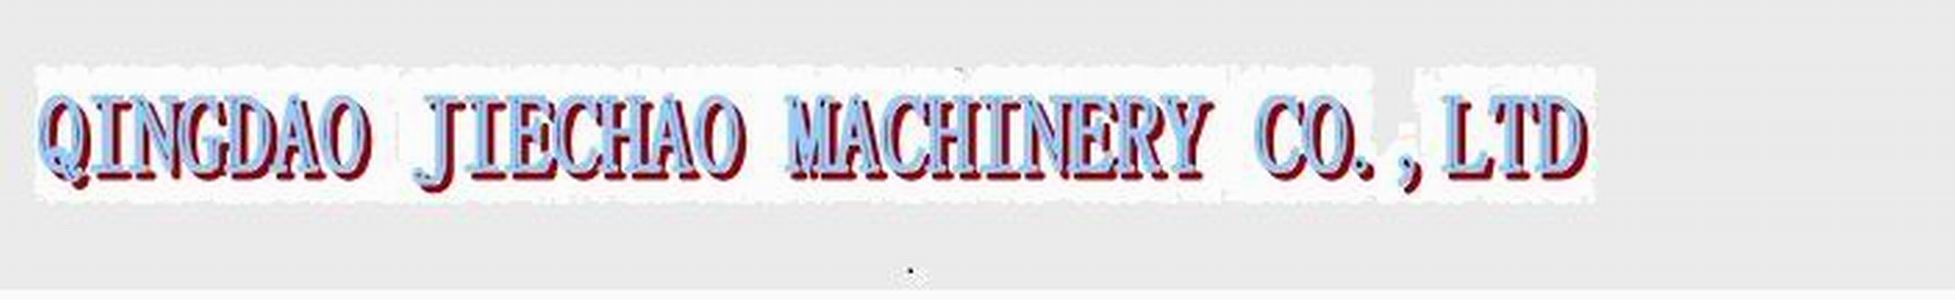 Qingdao Jiechao Machinery Co.,Ltd